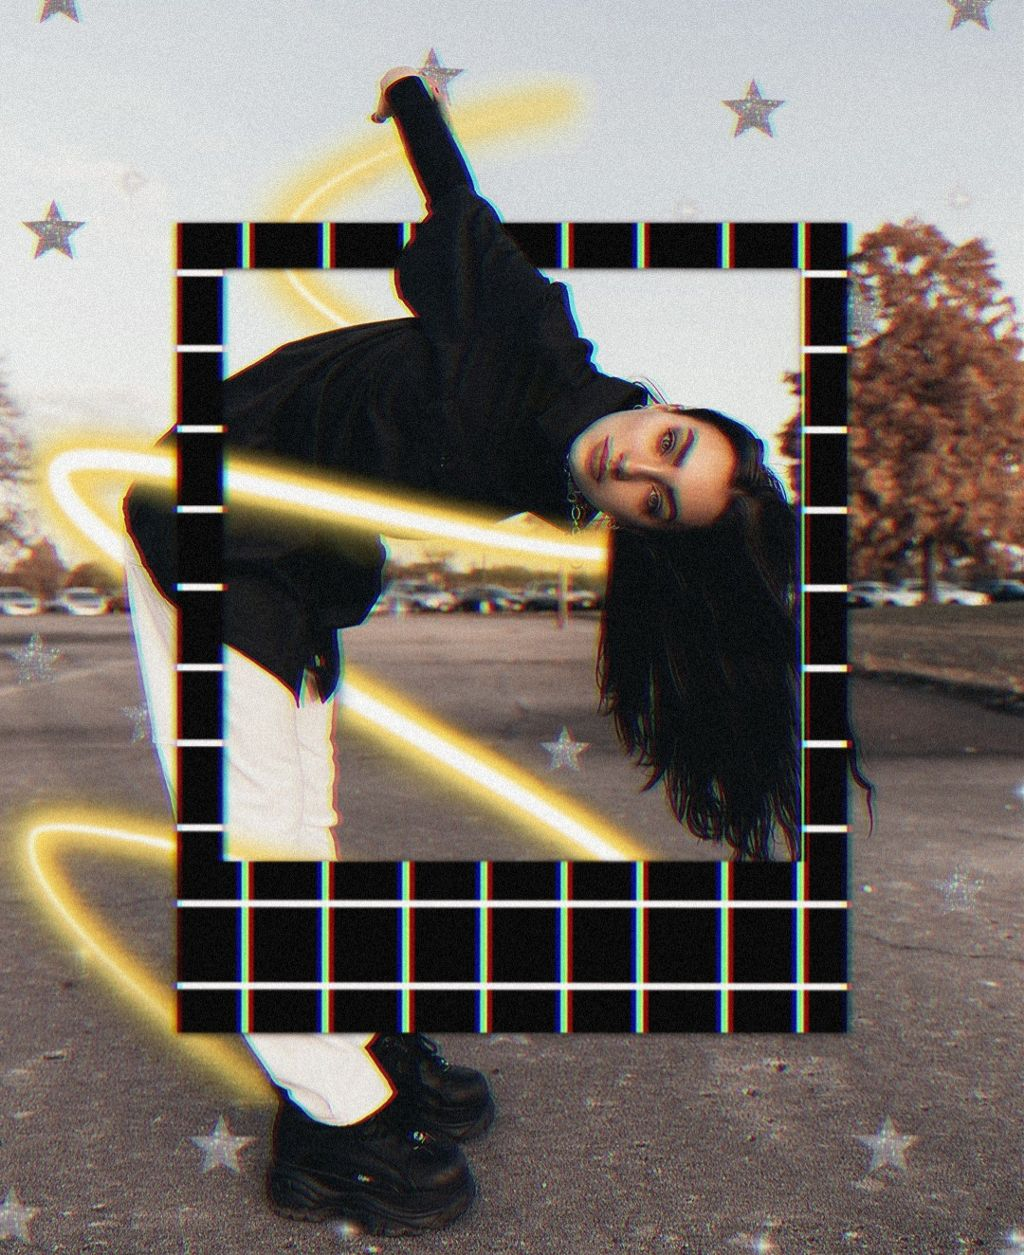 #freetoedit #frame #aesthetic #aesthetics #grunge #grungeaesthetic #vintage #tumblr #tumblrgirl #glitch #neon #trend #cool #awesome #makeawesome #girl